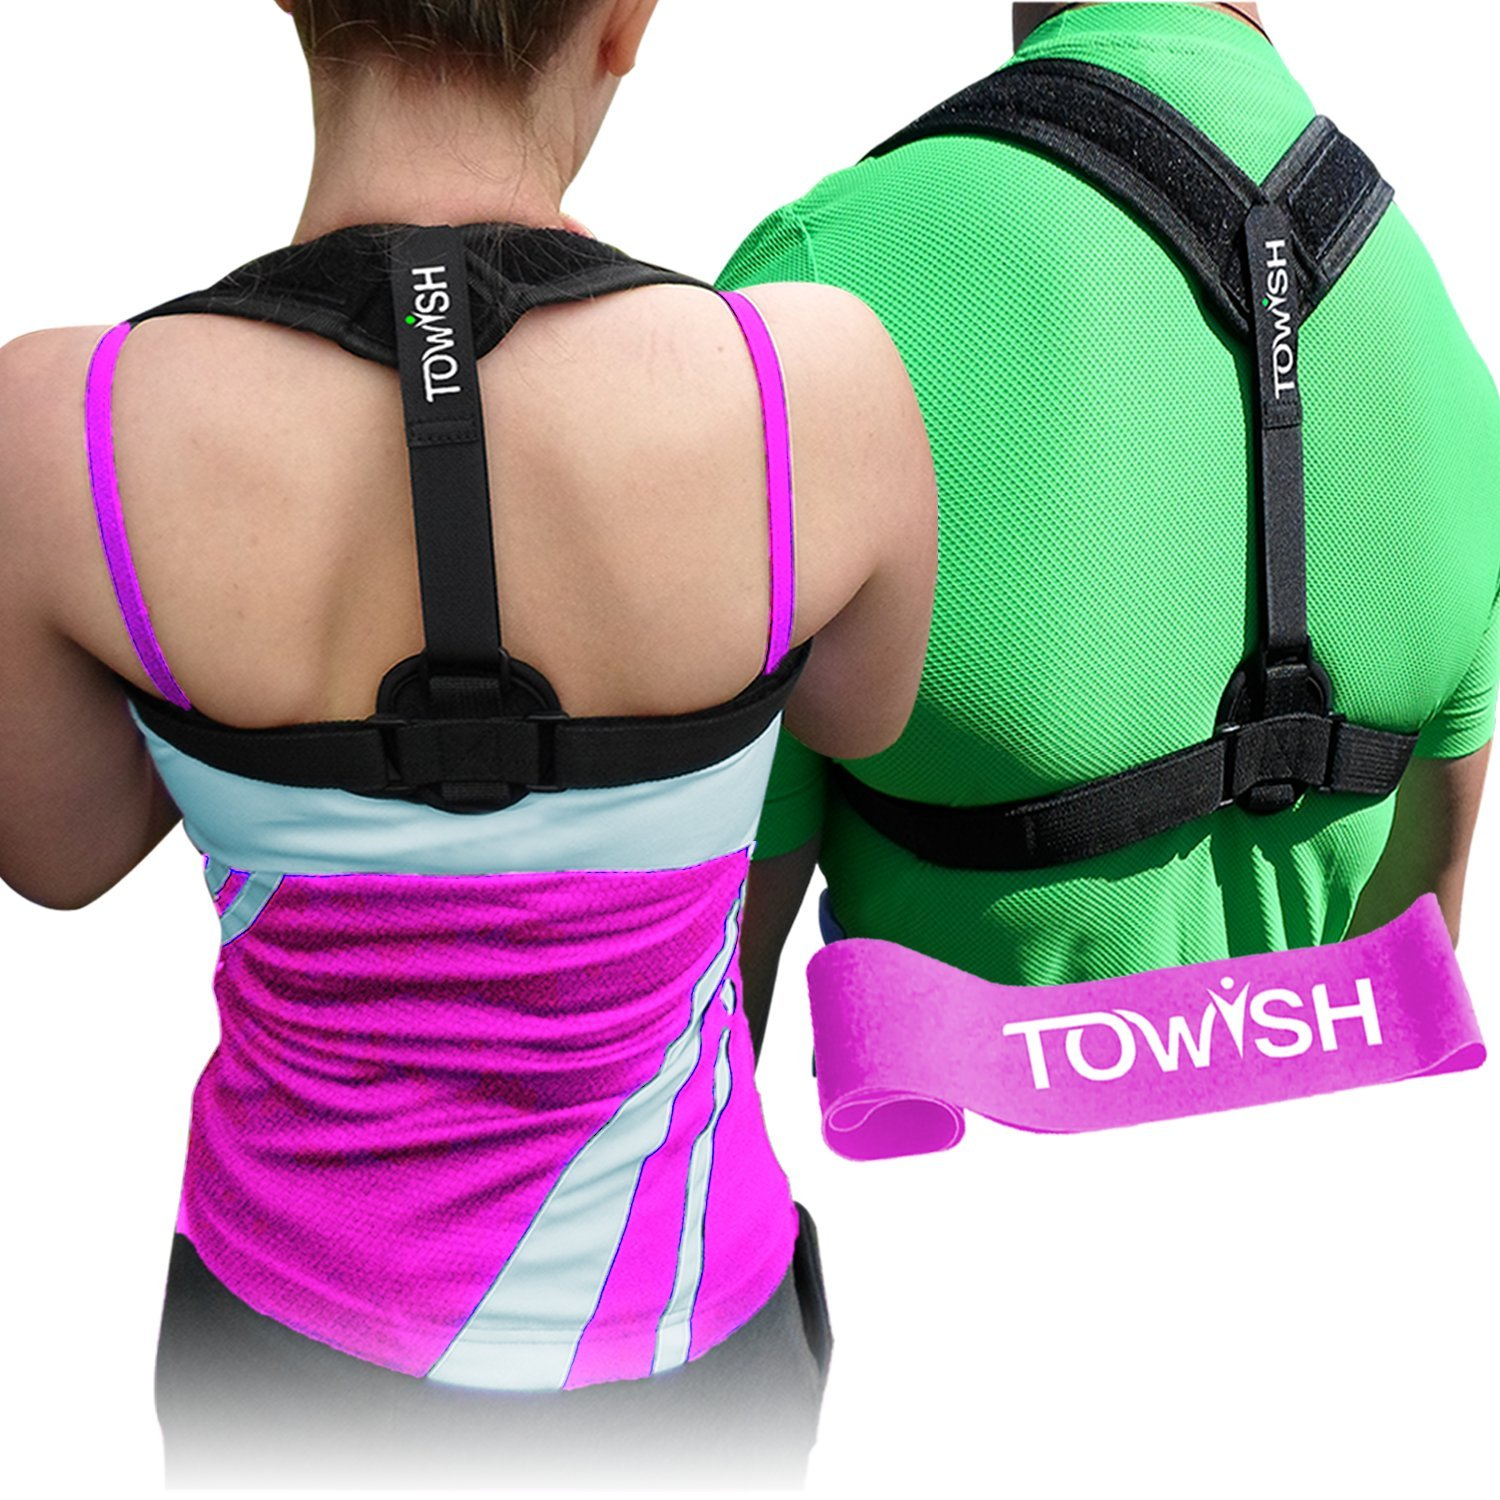 TOWISH Posture Corrector & Adjustable Back Support - Premium Aid Back Brace Helps with Bad Shoulder,Clavicle Alignment and Cervical Neck Pain - Comfortable Medical Figure 8 Correction Device - M Size